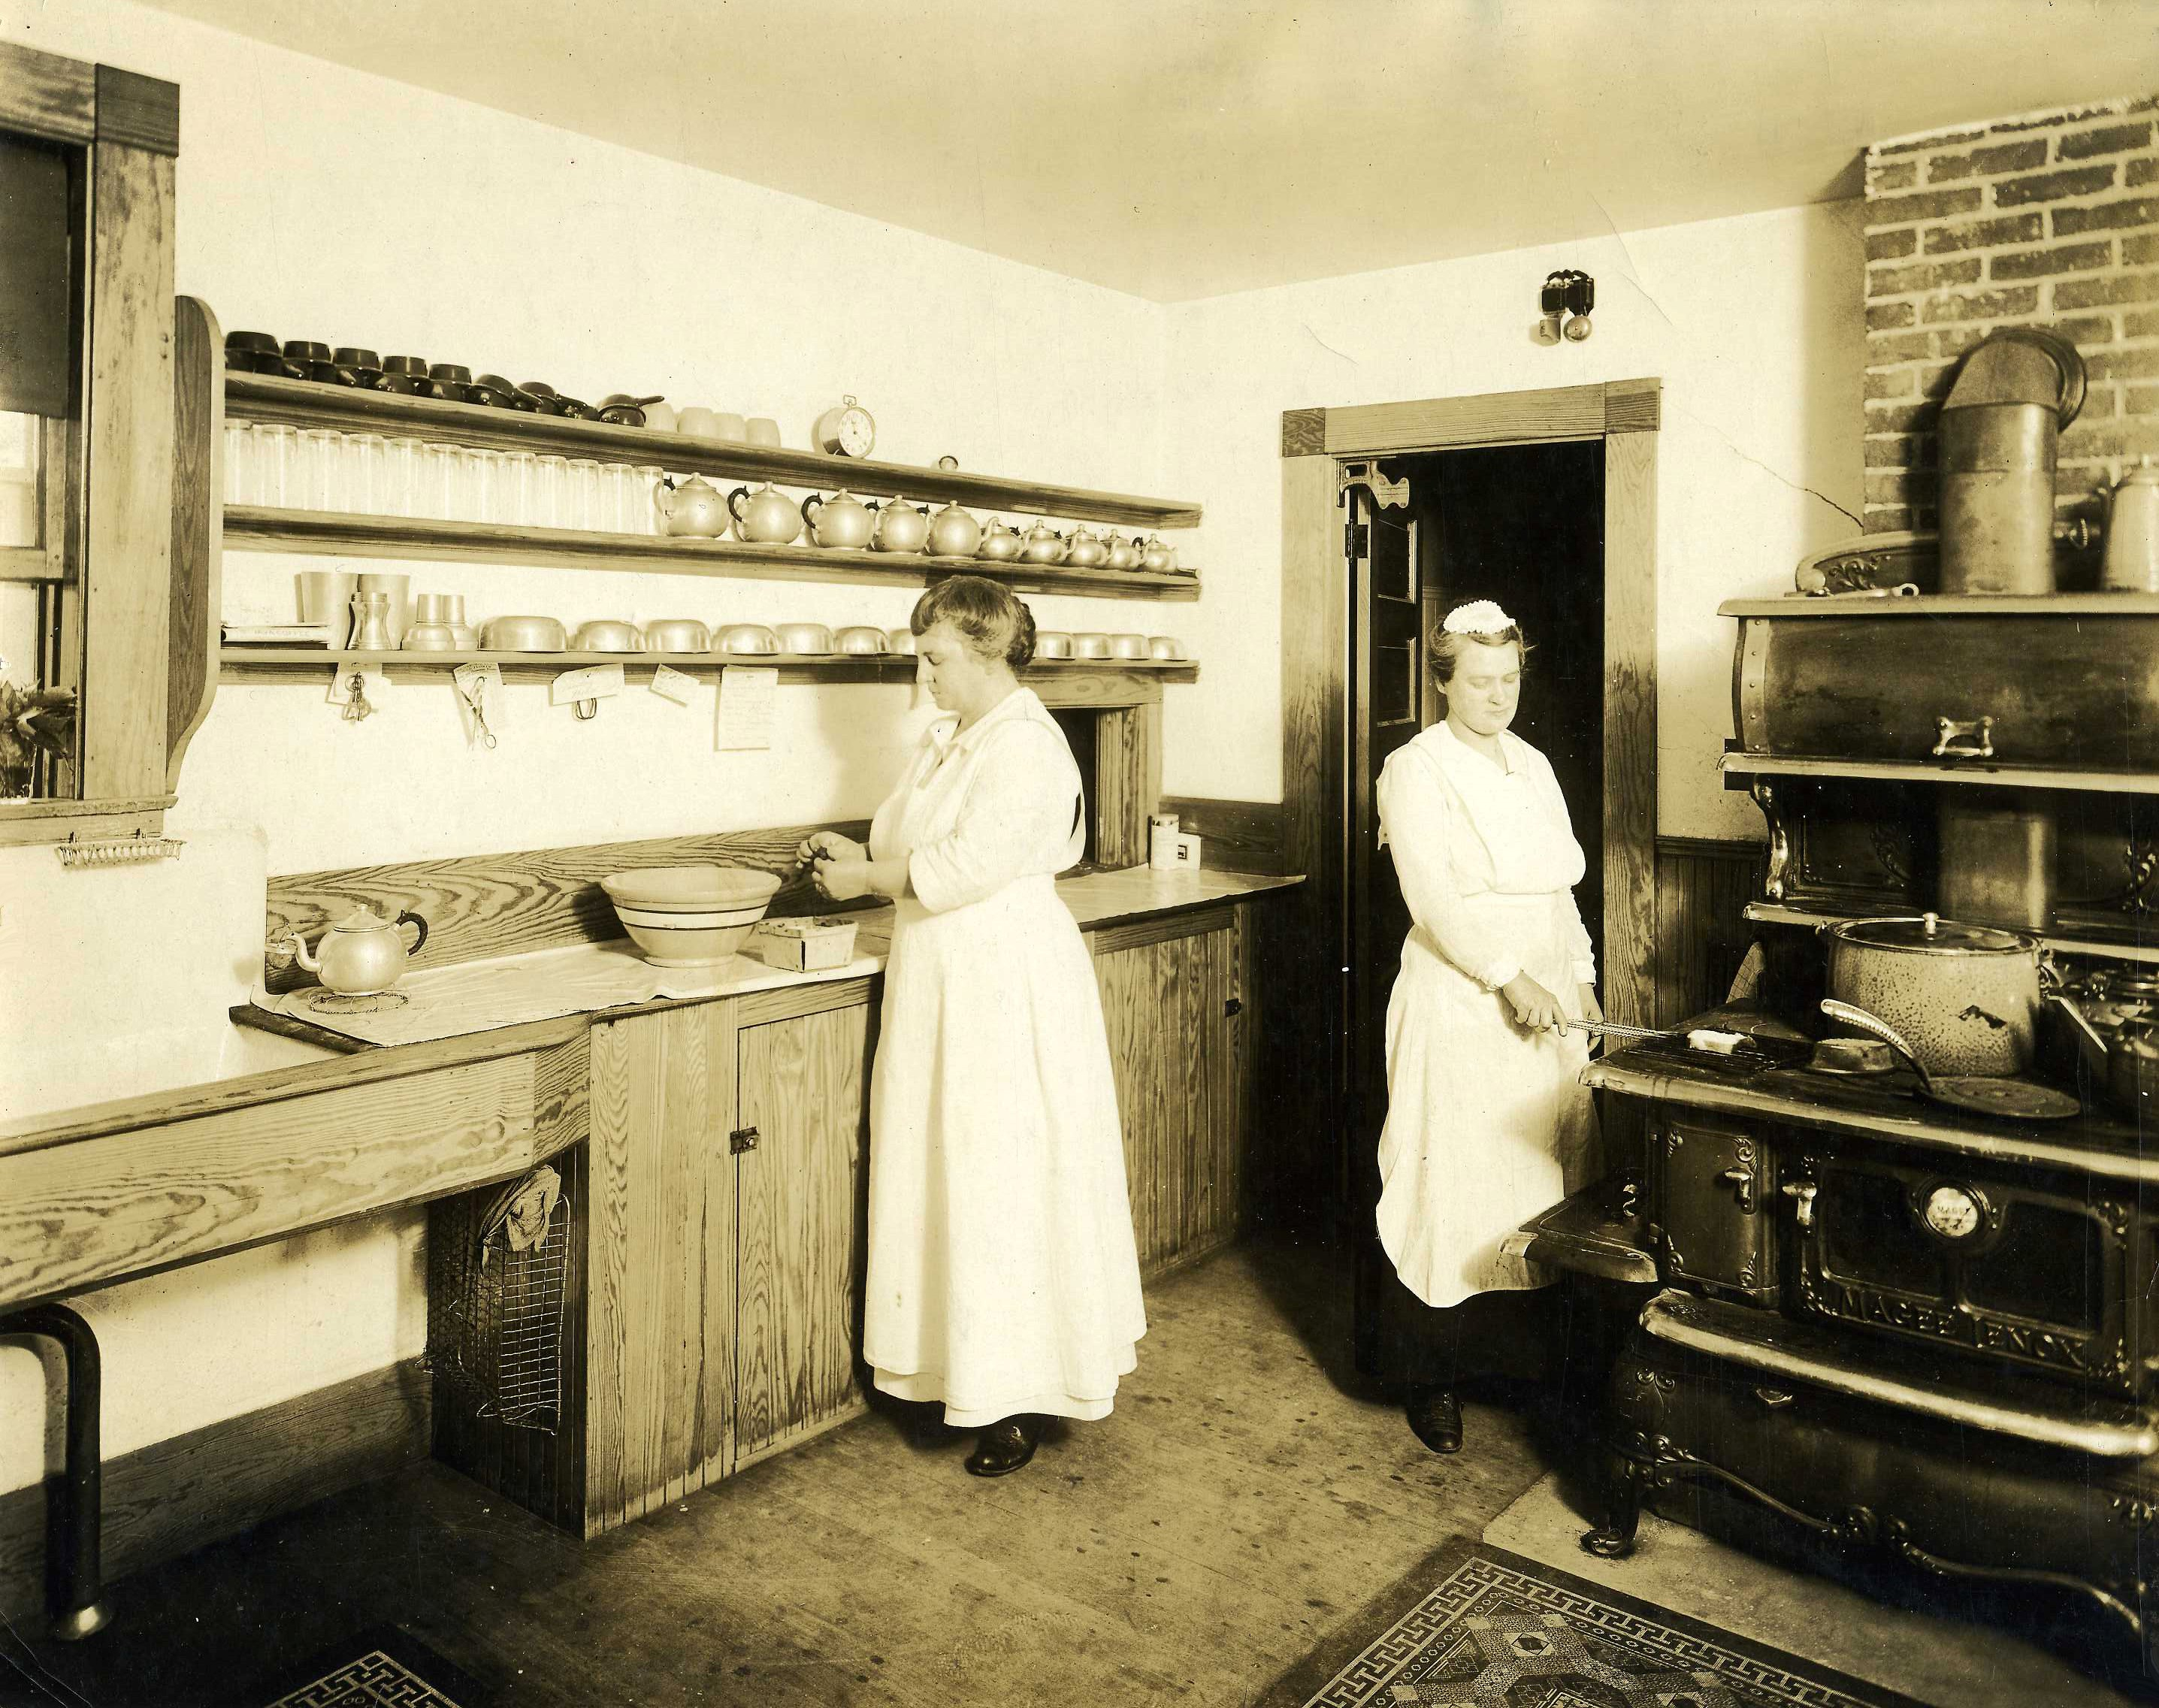 Lenore S Kitchen